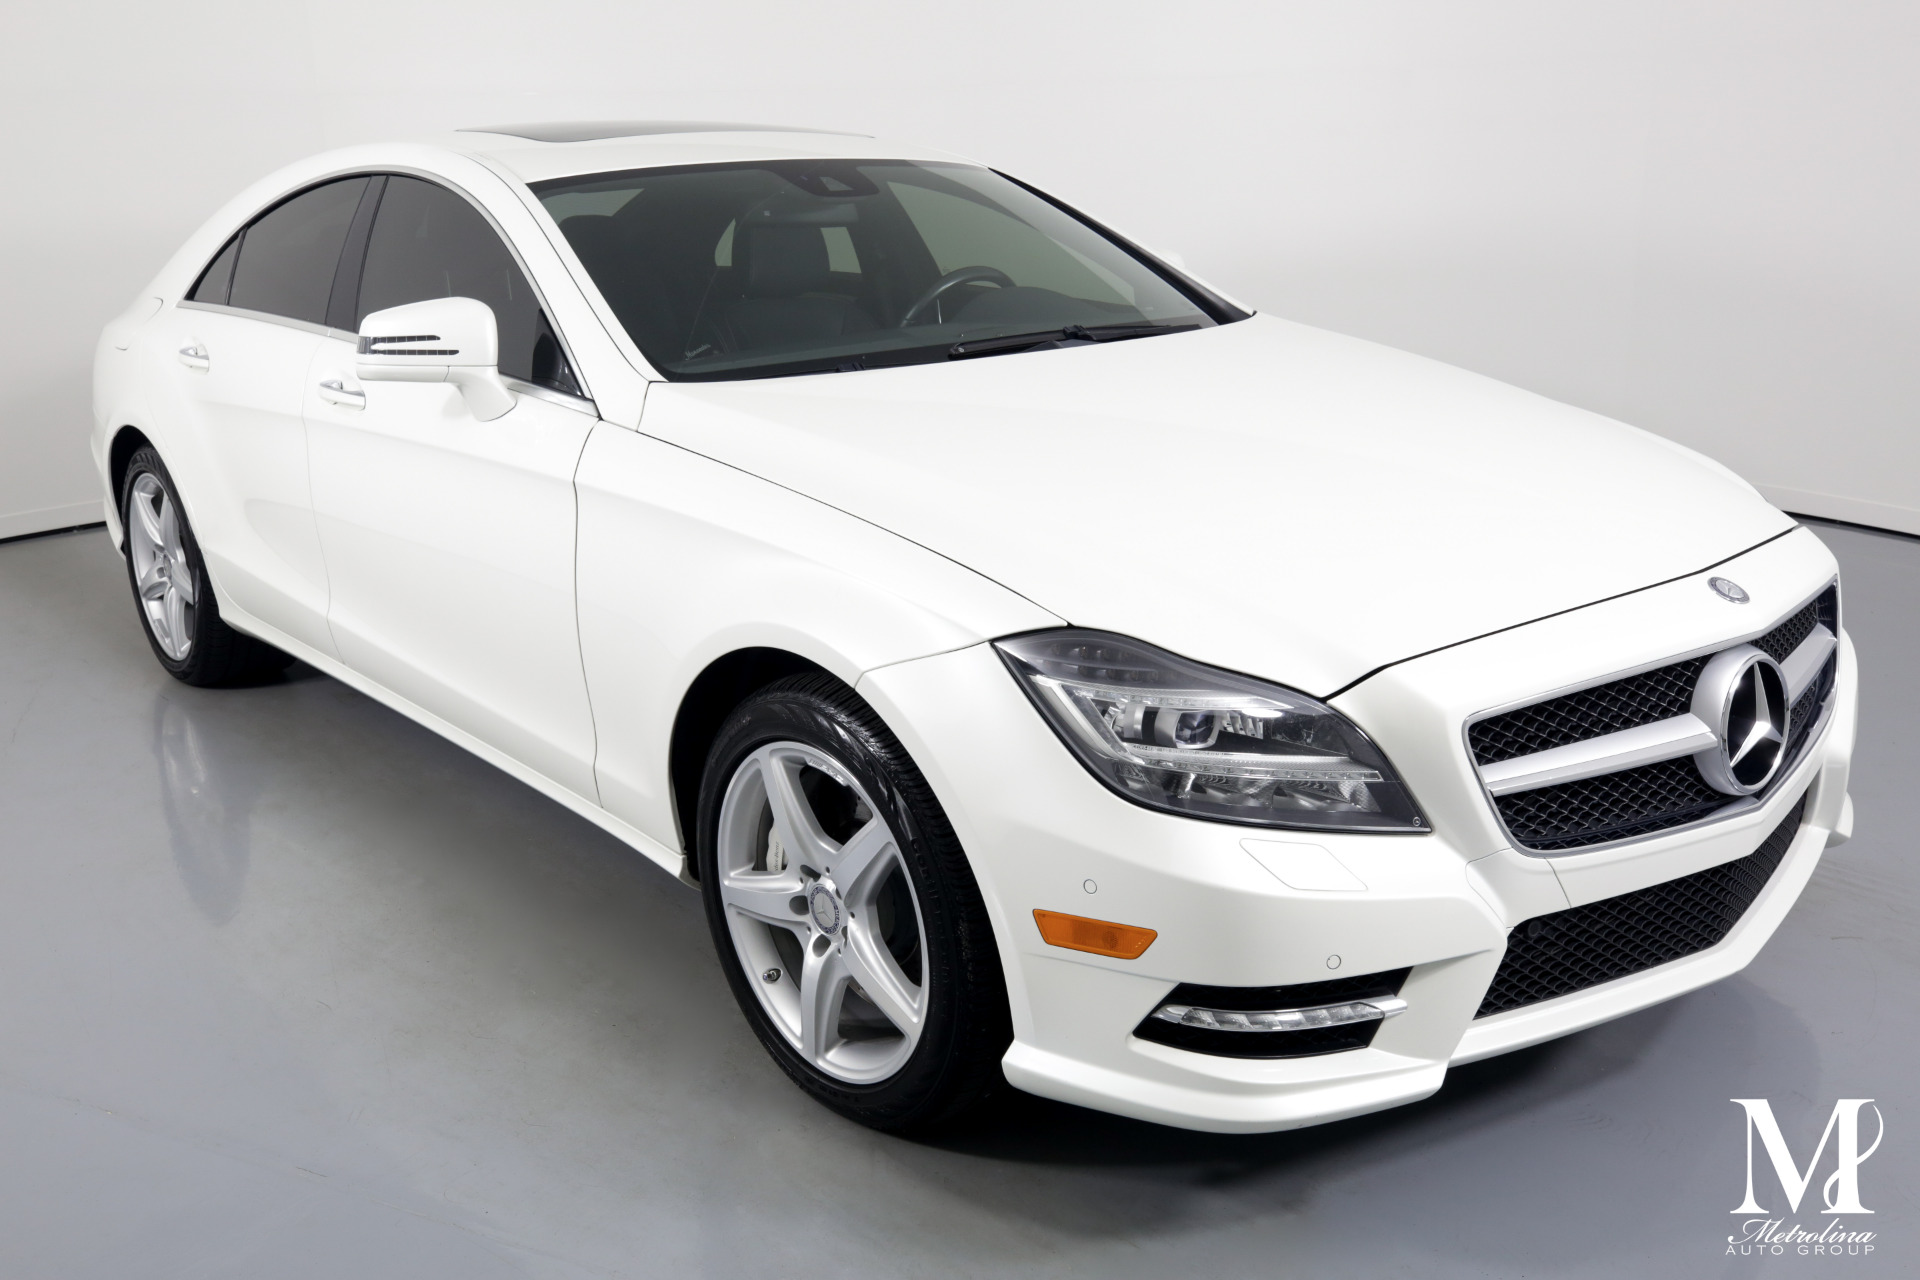 Used 2014 Mercedes-Benz CLS CLS 550 for sale Sold at Metrolina Auto Group in Charlotte NC 28217 - 2